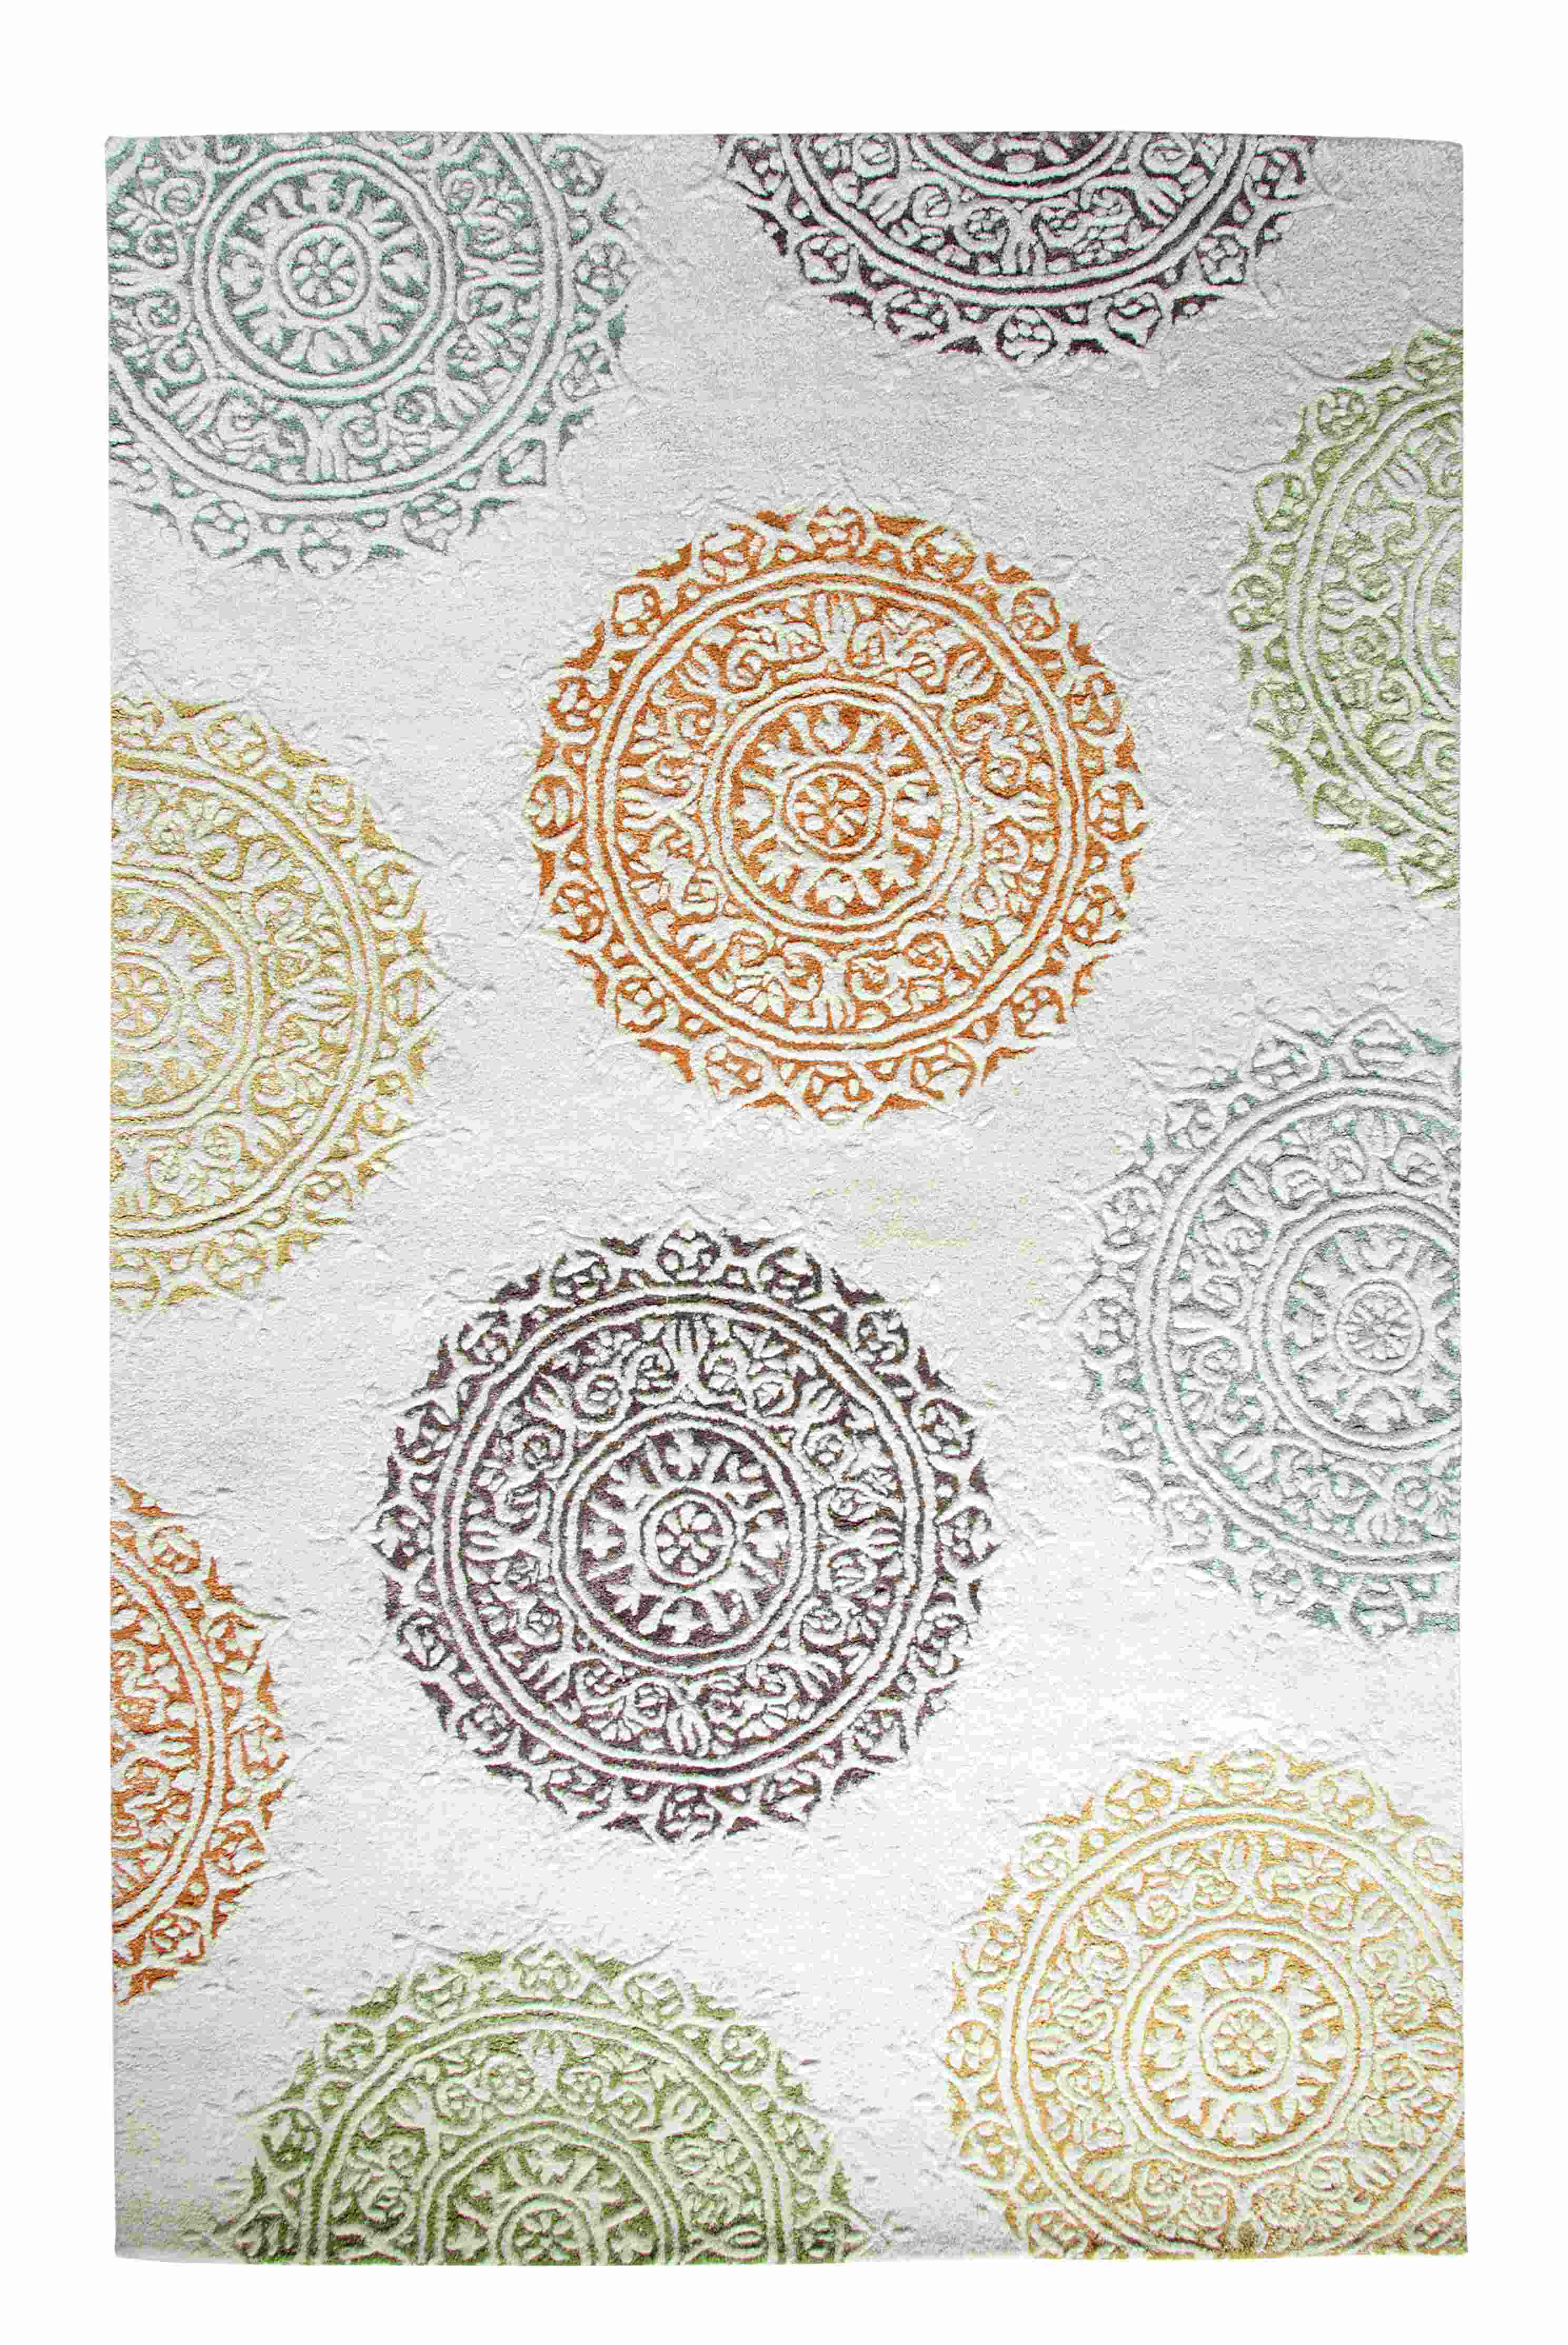 Dynamic Rugs Allure Medallion/damask Ivory 1918 Area Rug